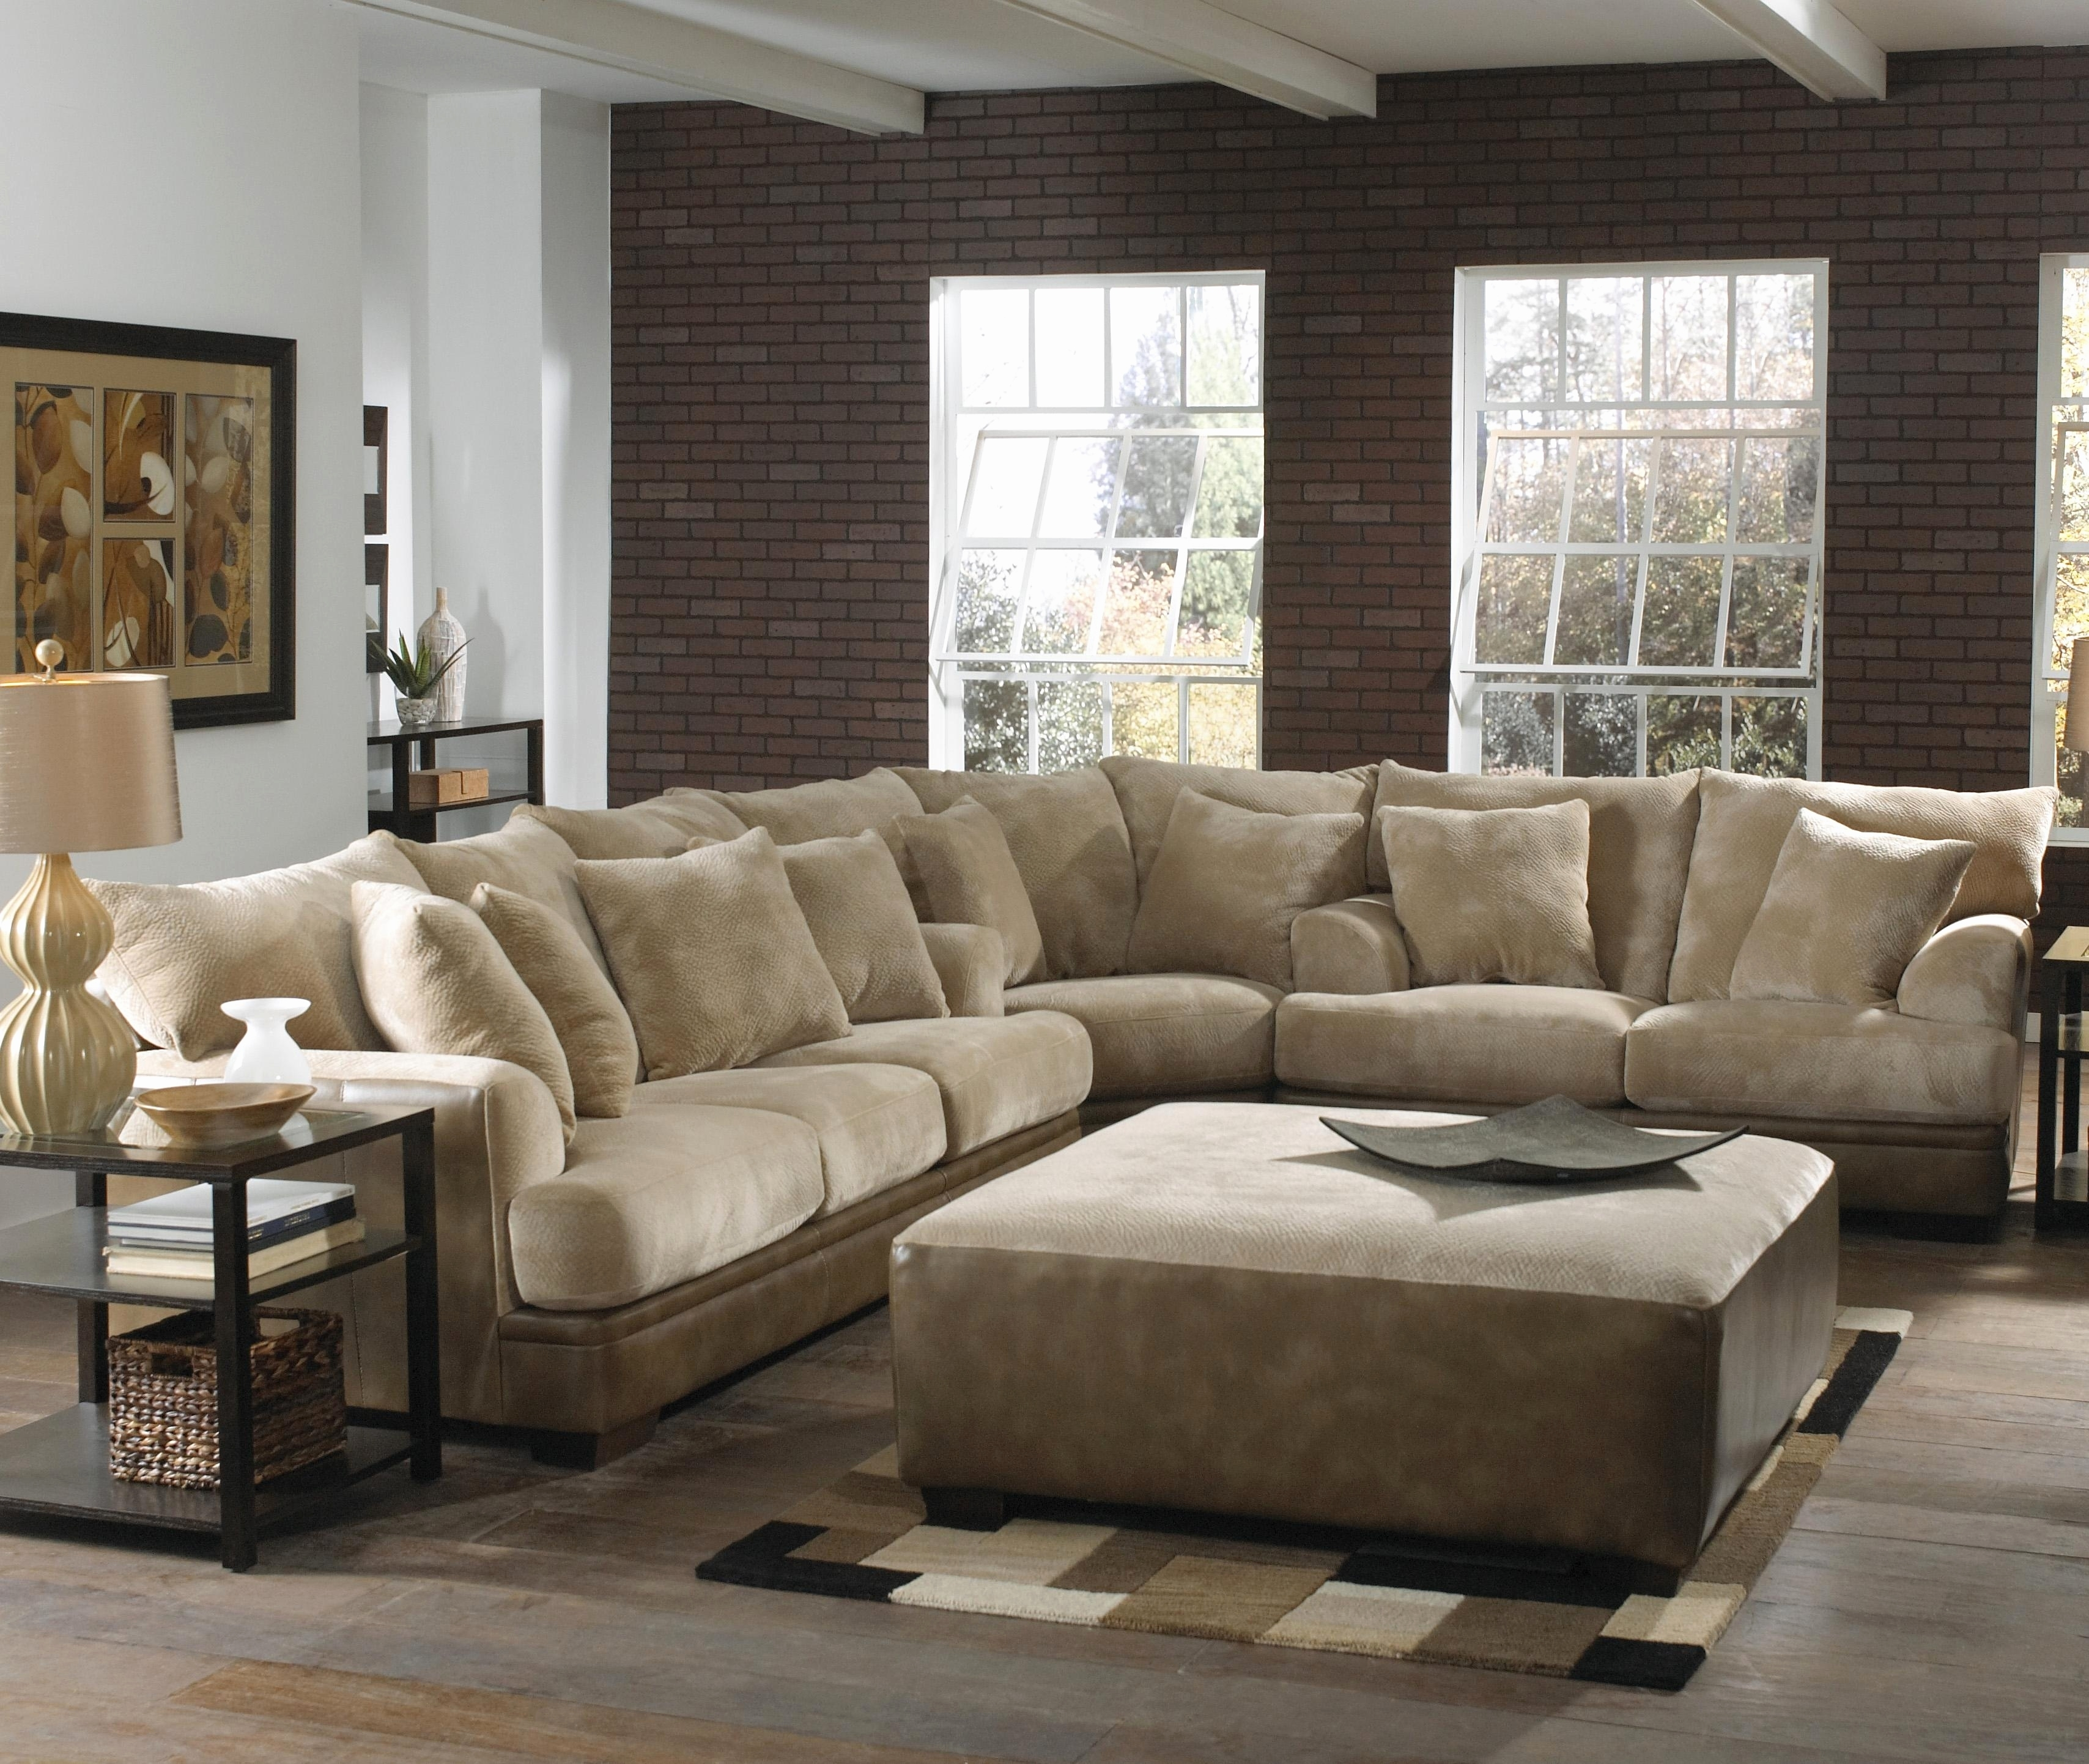 Fresh Sectional Sofa With Extra Wide Chaise 2018 – Couches Ideas With Wide Sectional Sofas (Image 3 of 10)